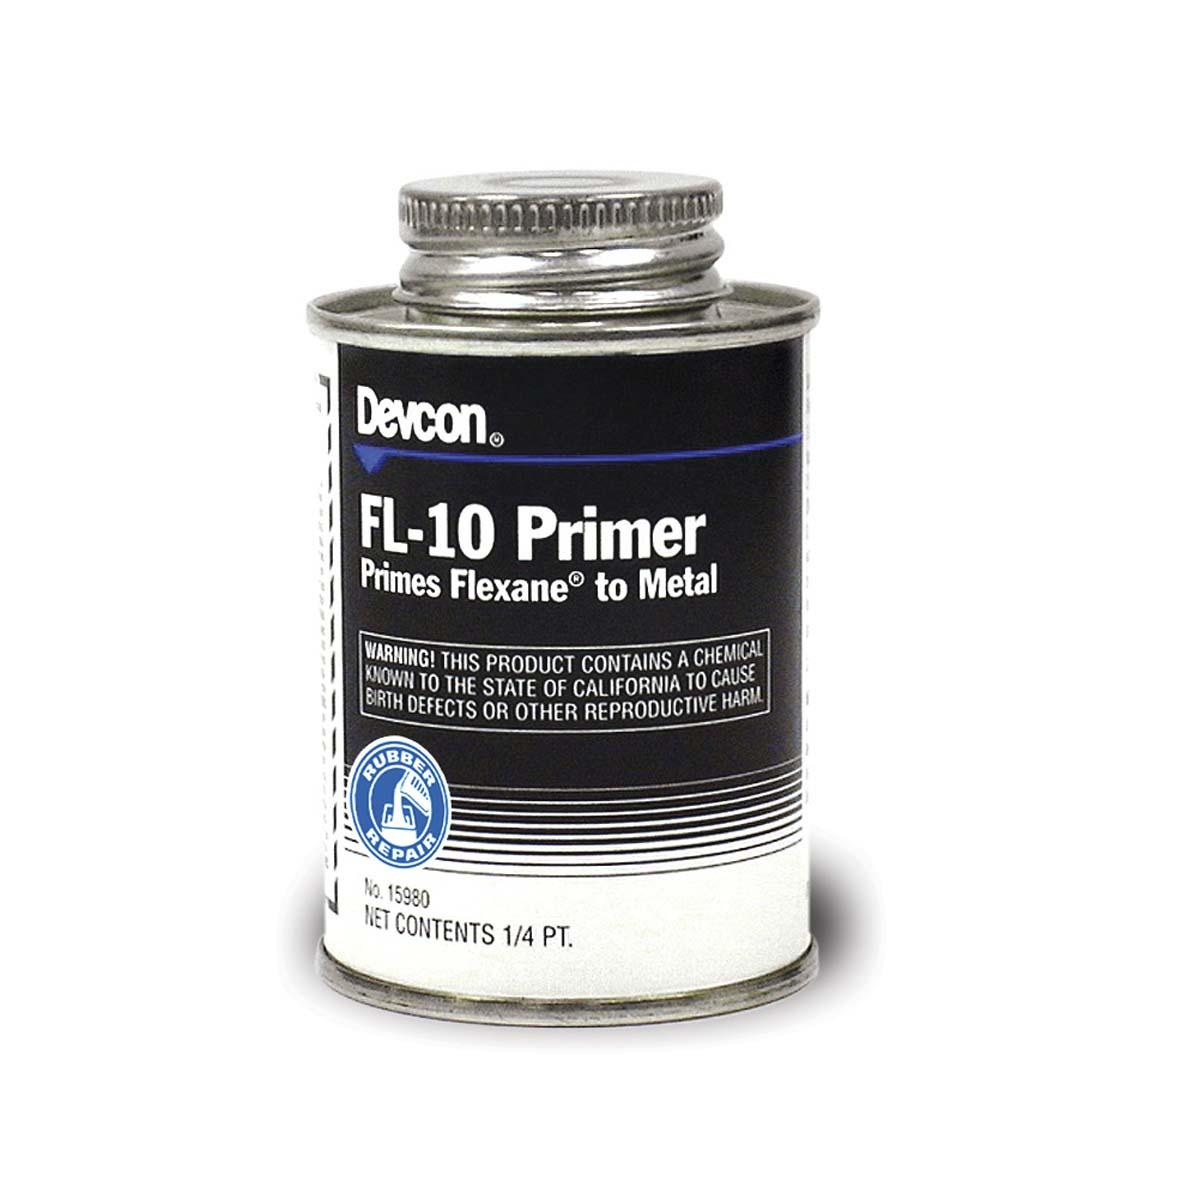 DEVCON® FL-10 Flexane Primer  - 4 oz  1 Each